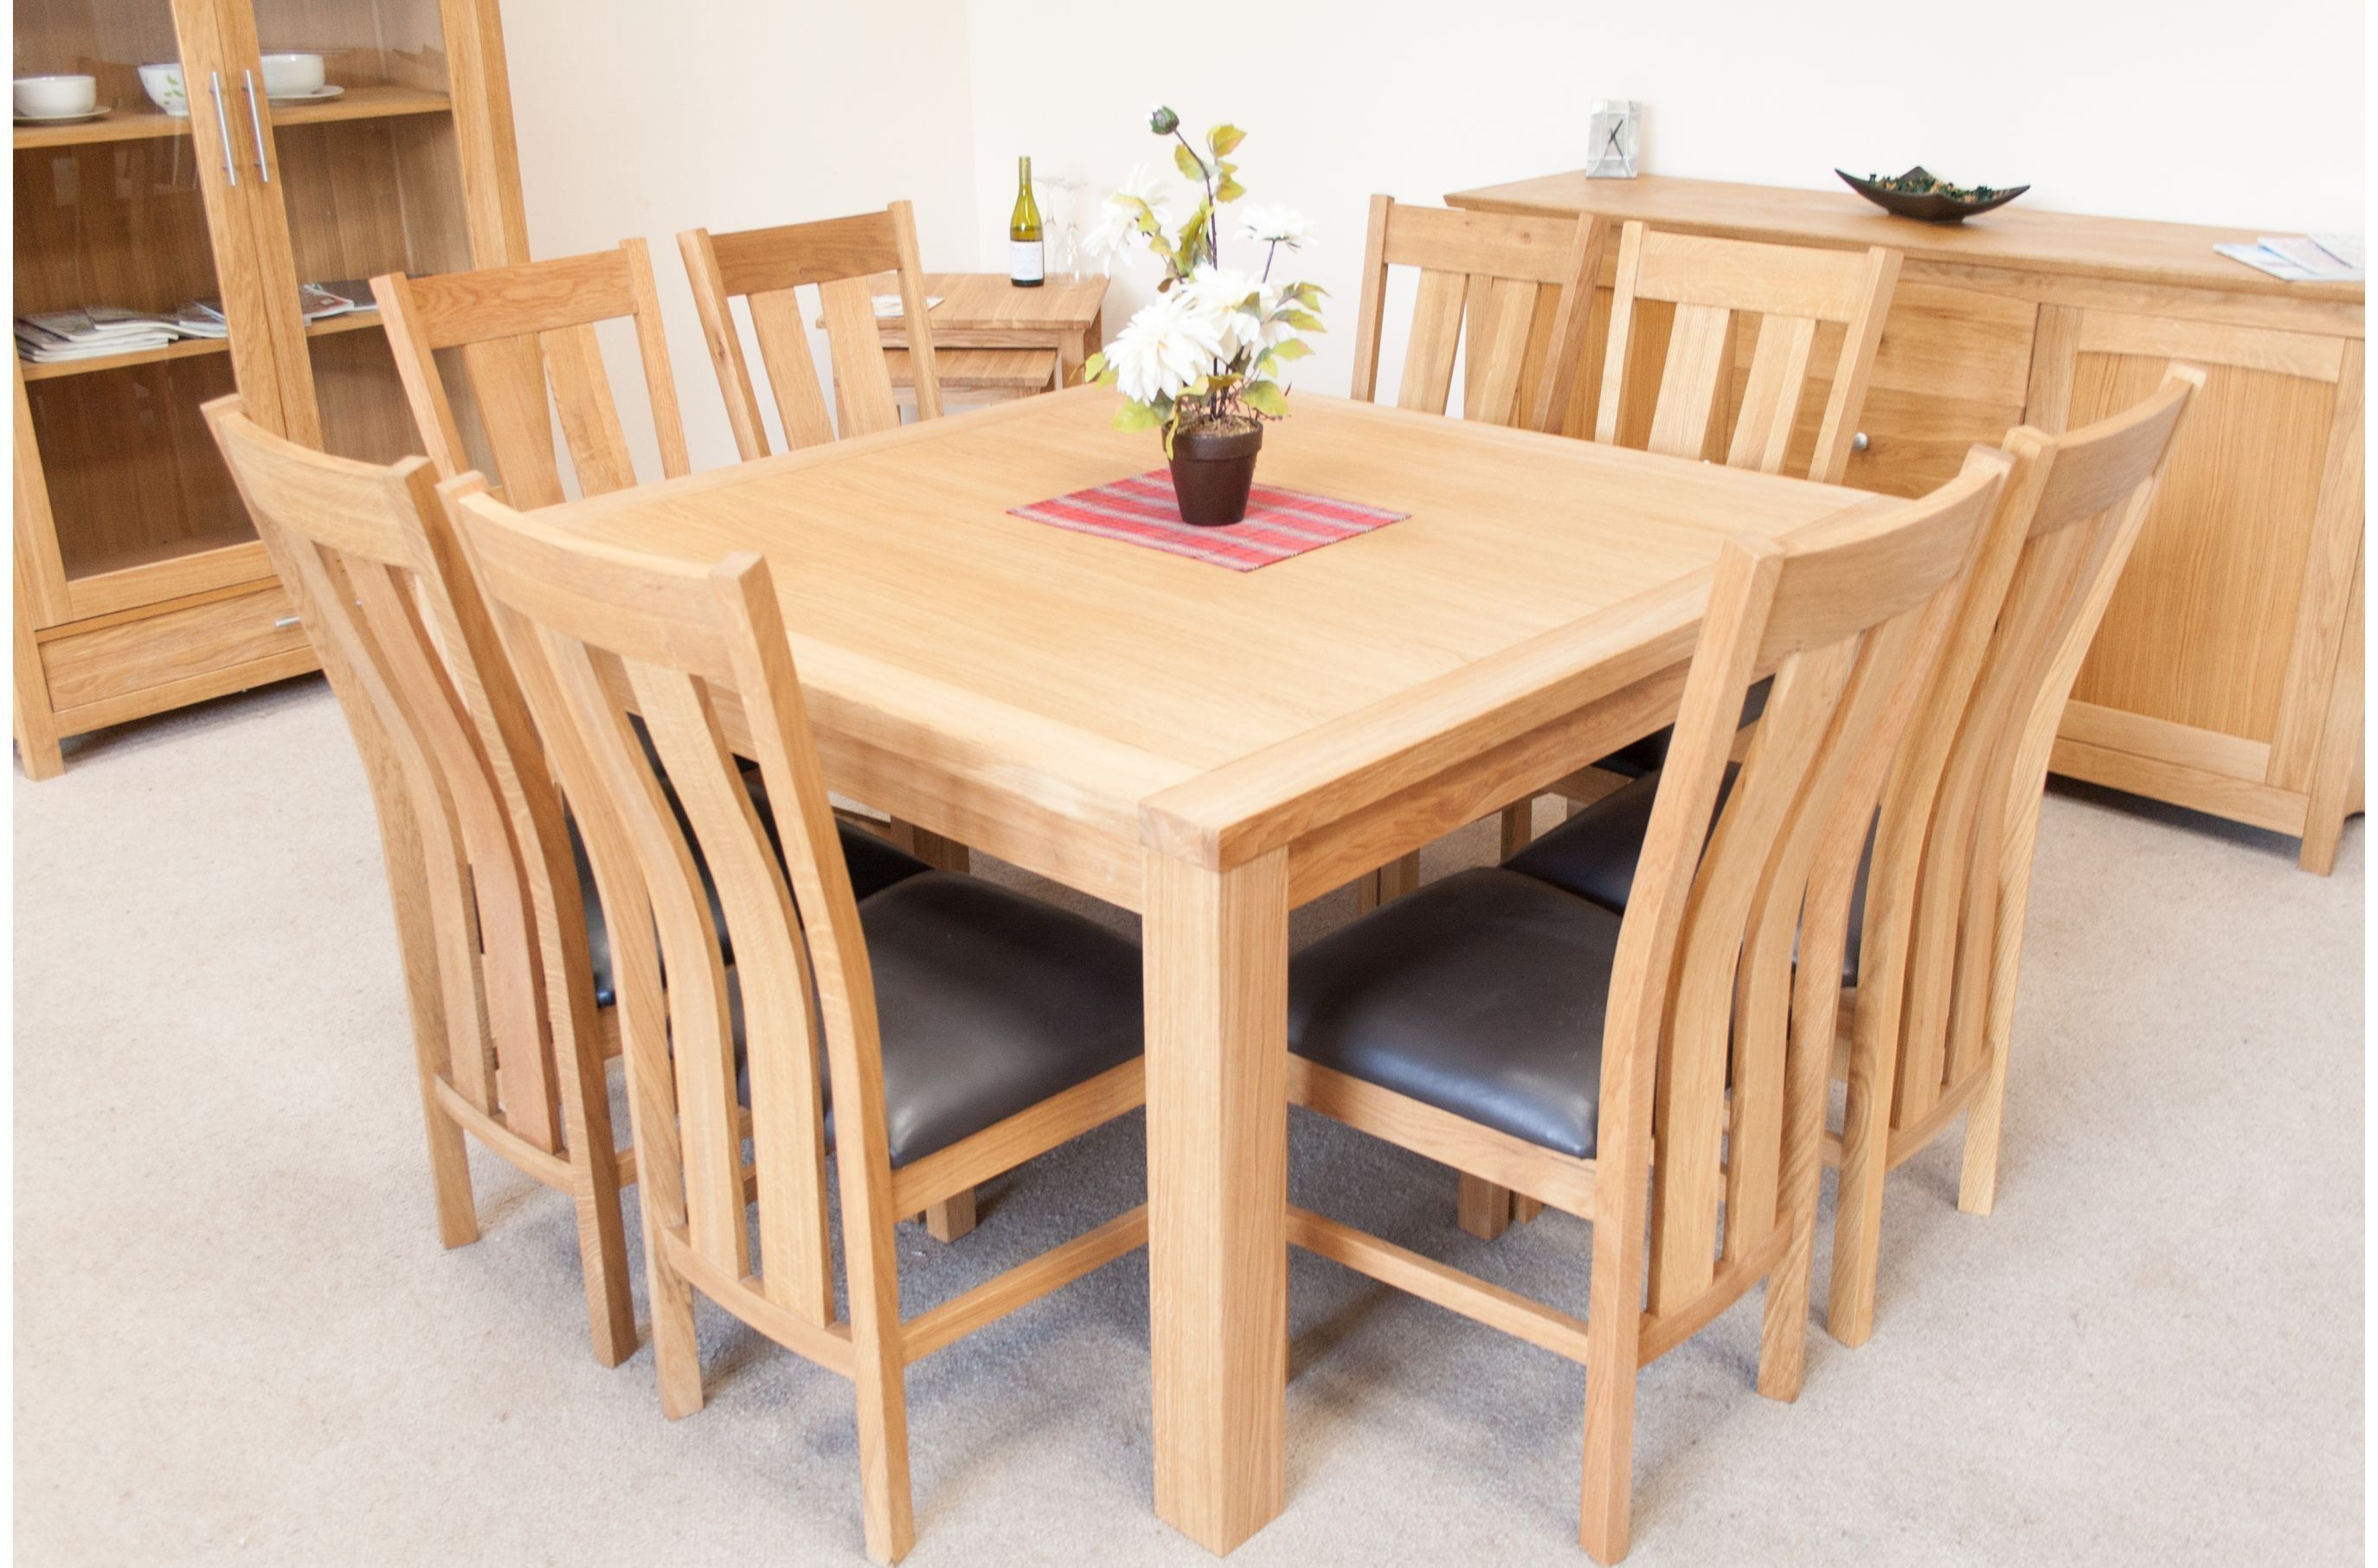 Cool 49 Amazing And Functional Dining Table 8 Seater Ideas